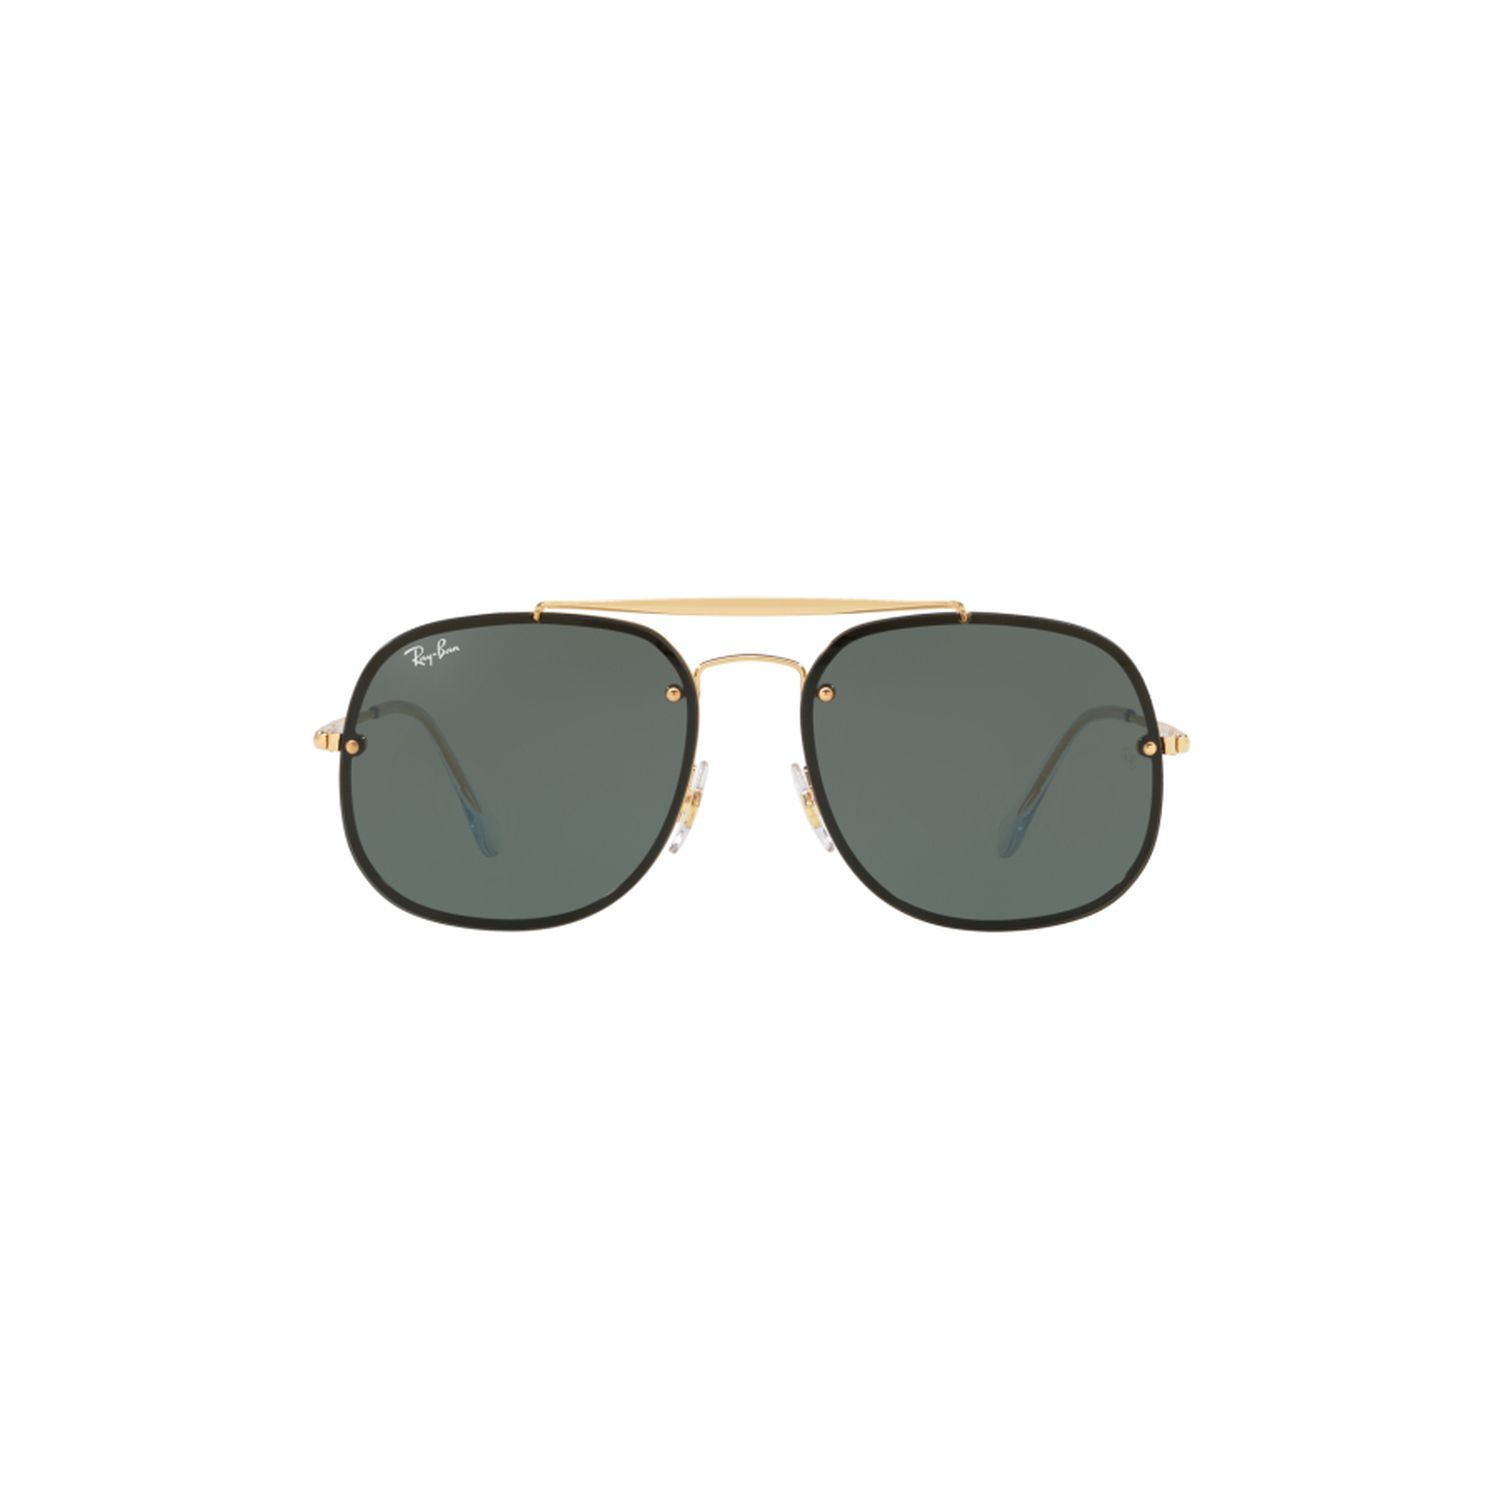 6eba1ce112e Ray-Ban RB3583N-9050-71 Blaze General Sunglasses Gold Frame ...